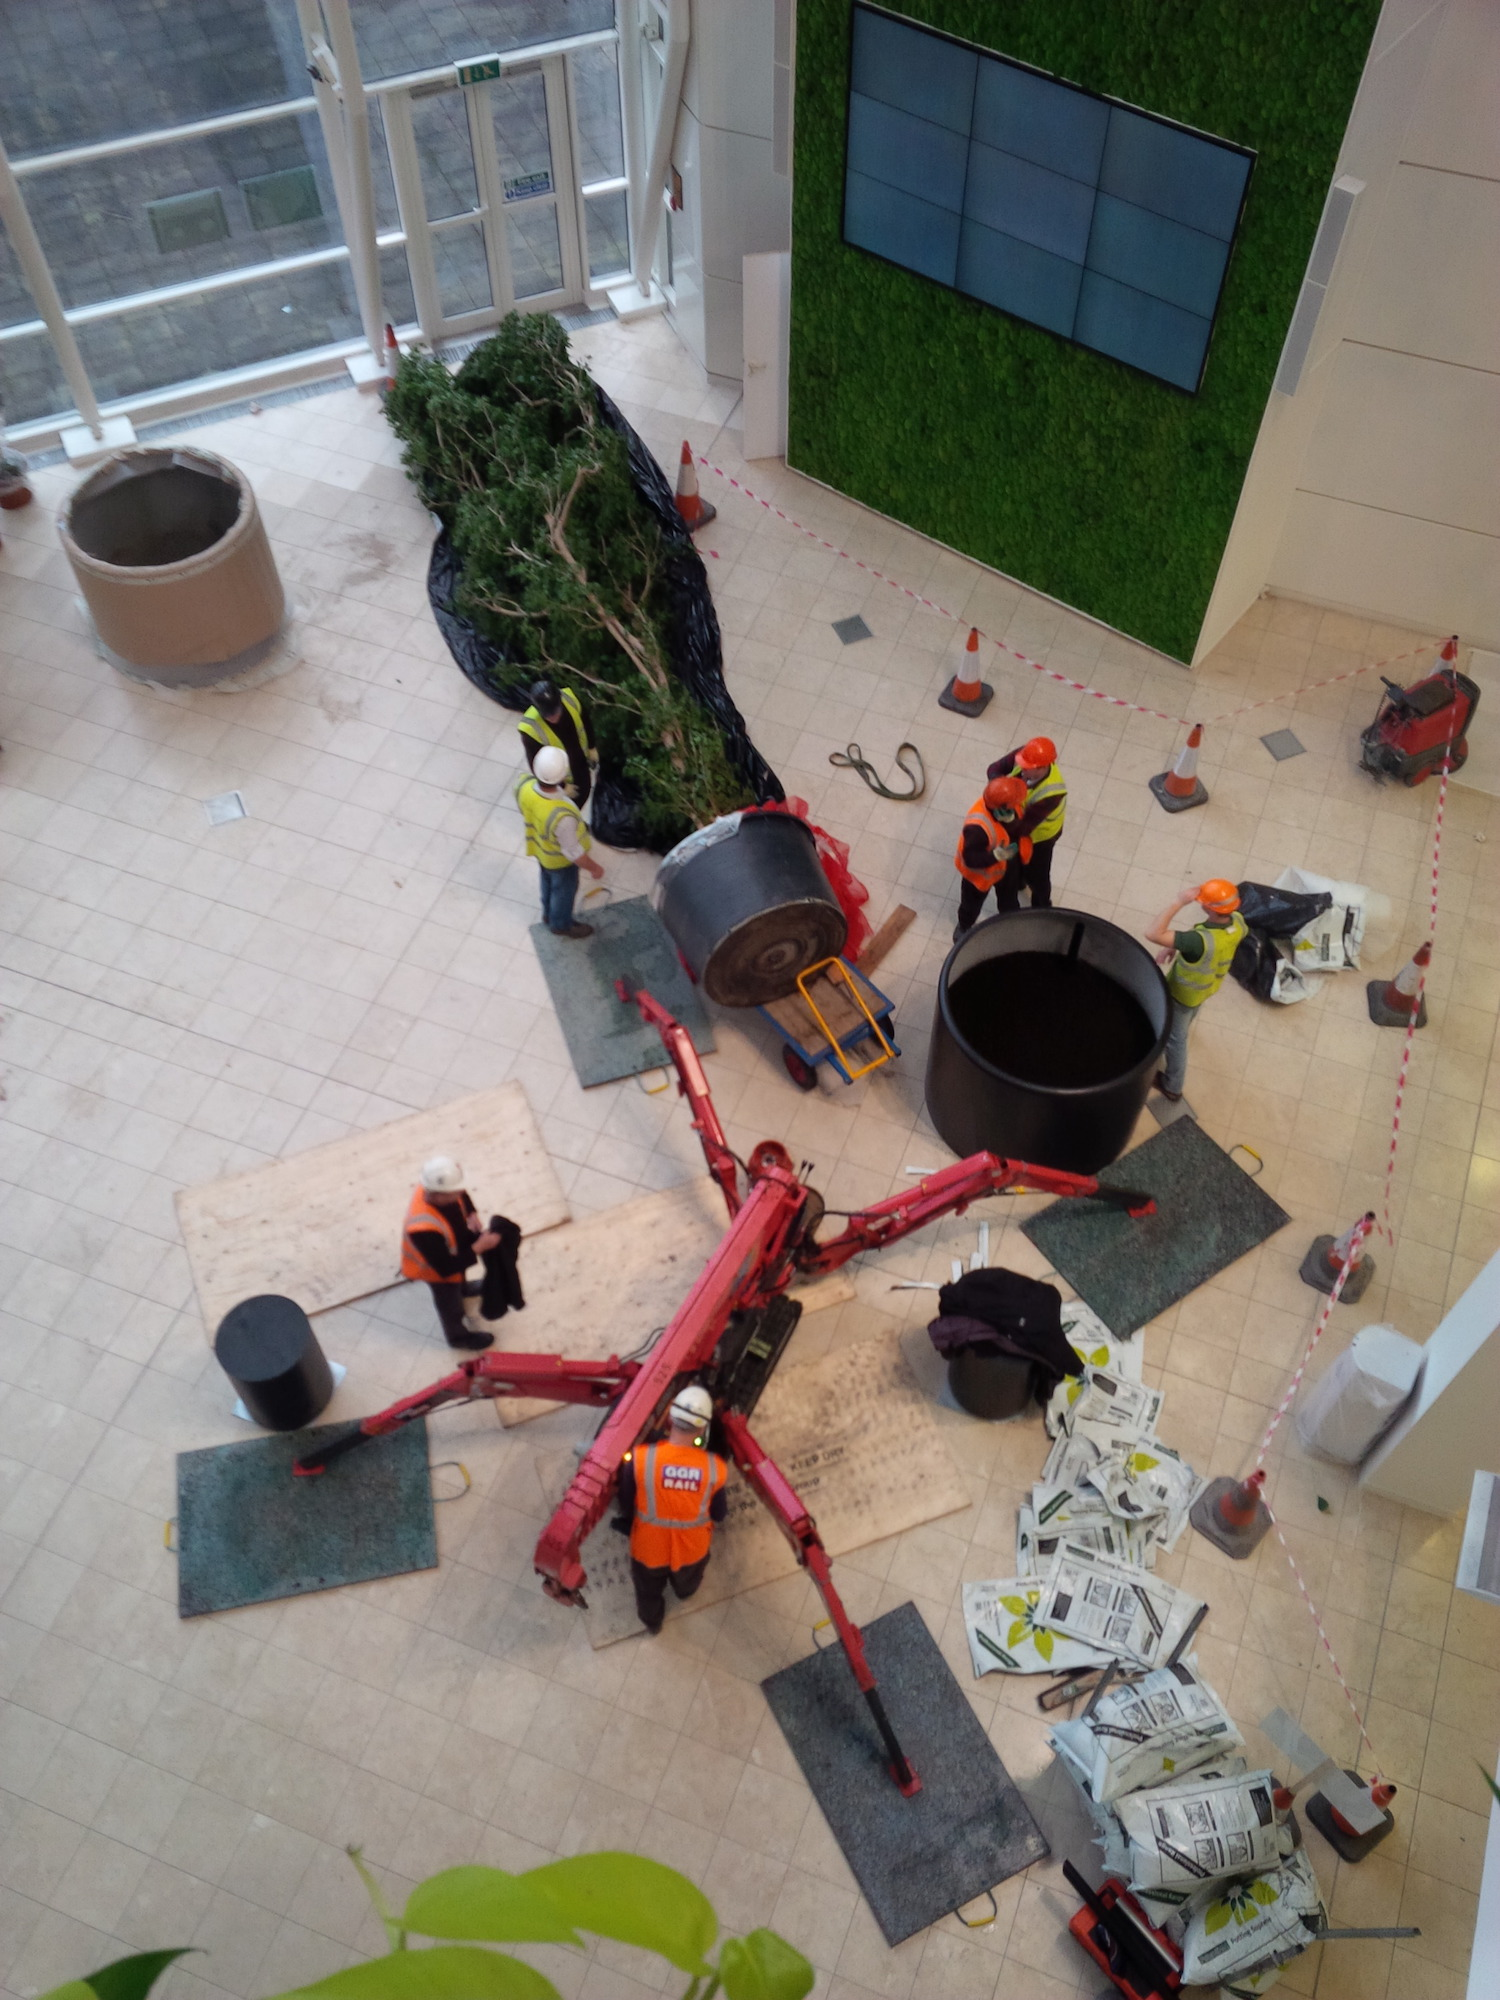 ovo-energy-plantcare-interior-plants-office-eco-friendly-trees-bristol-cardiff-image-2